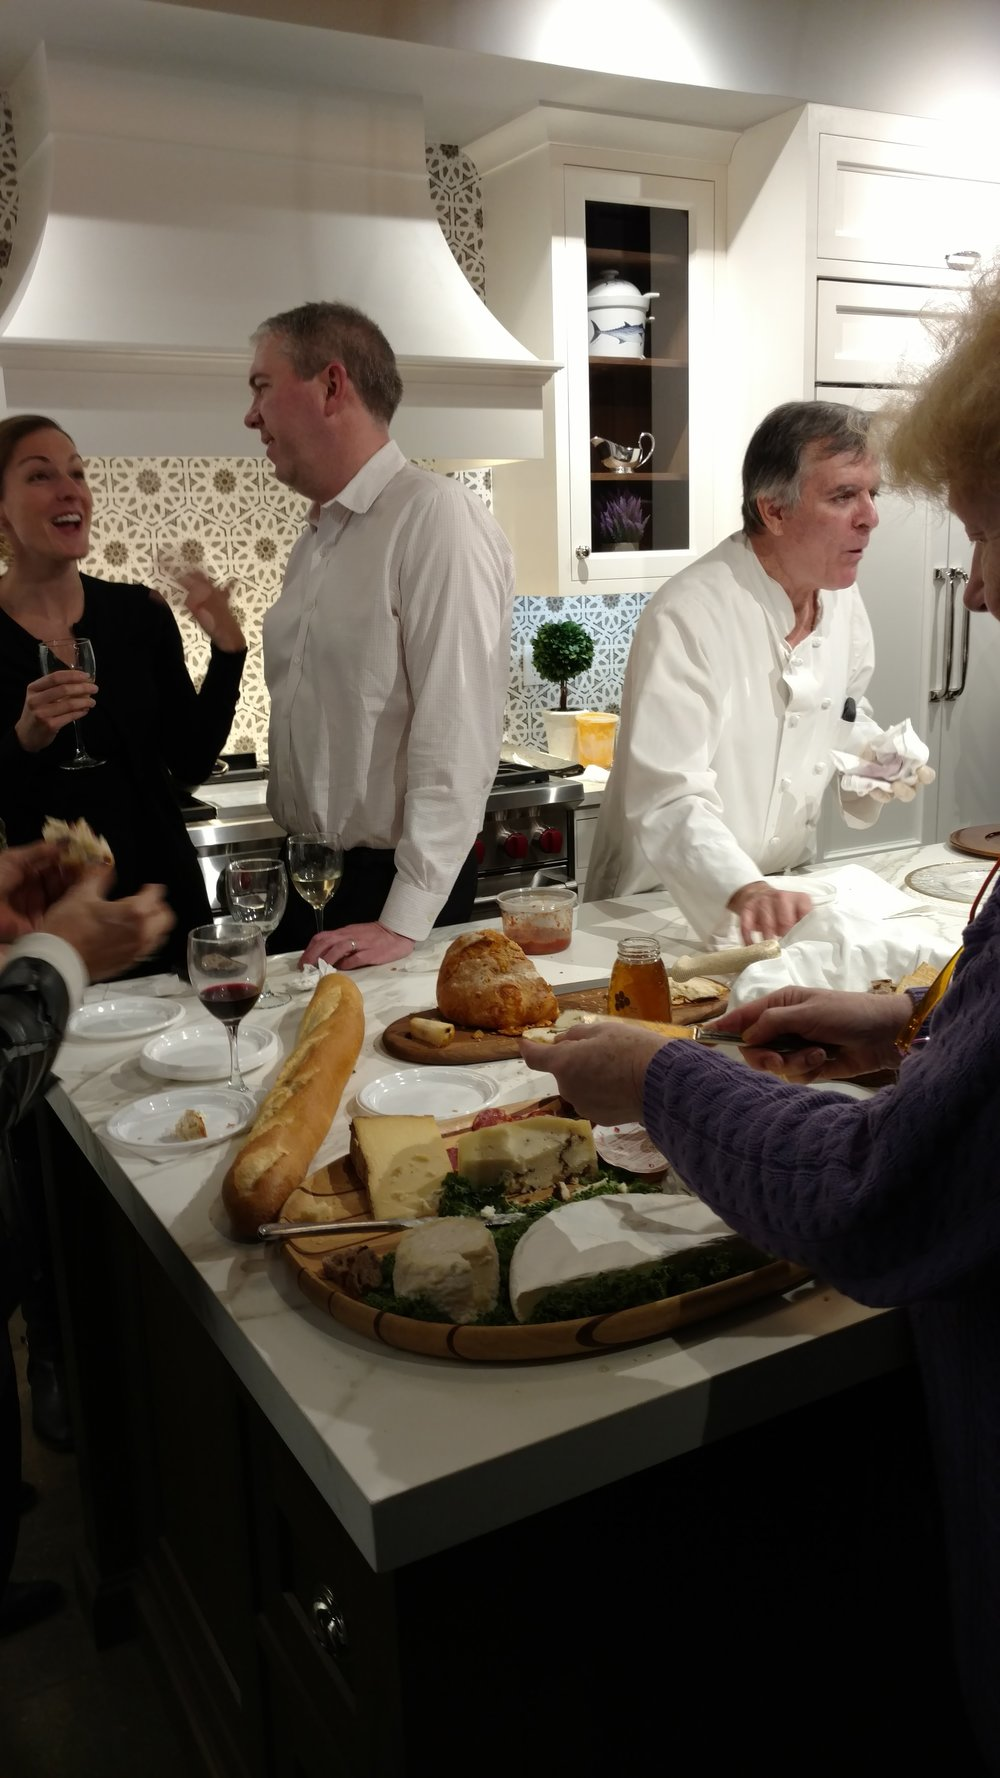 gala-opening-curry-kingston-cheeses.jpg